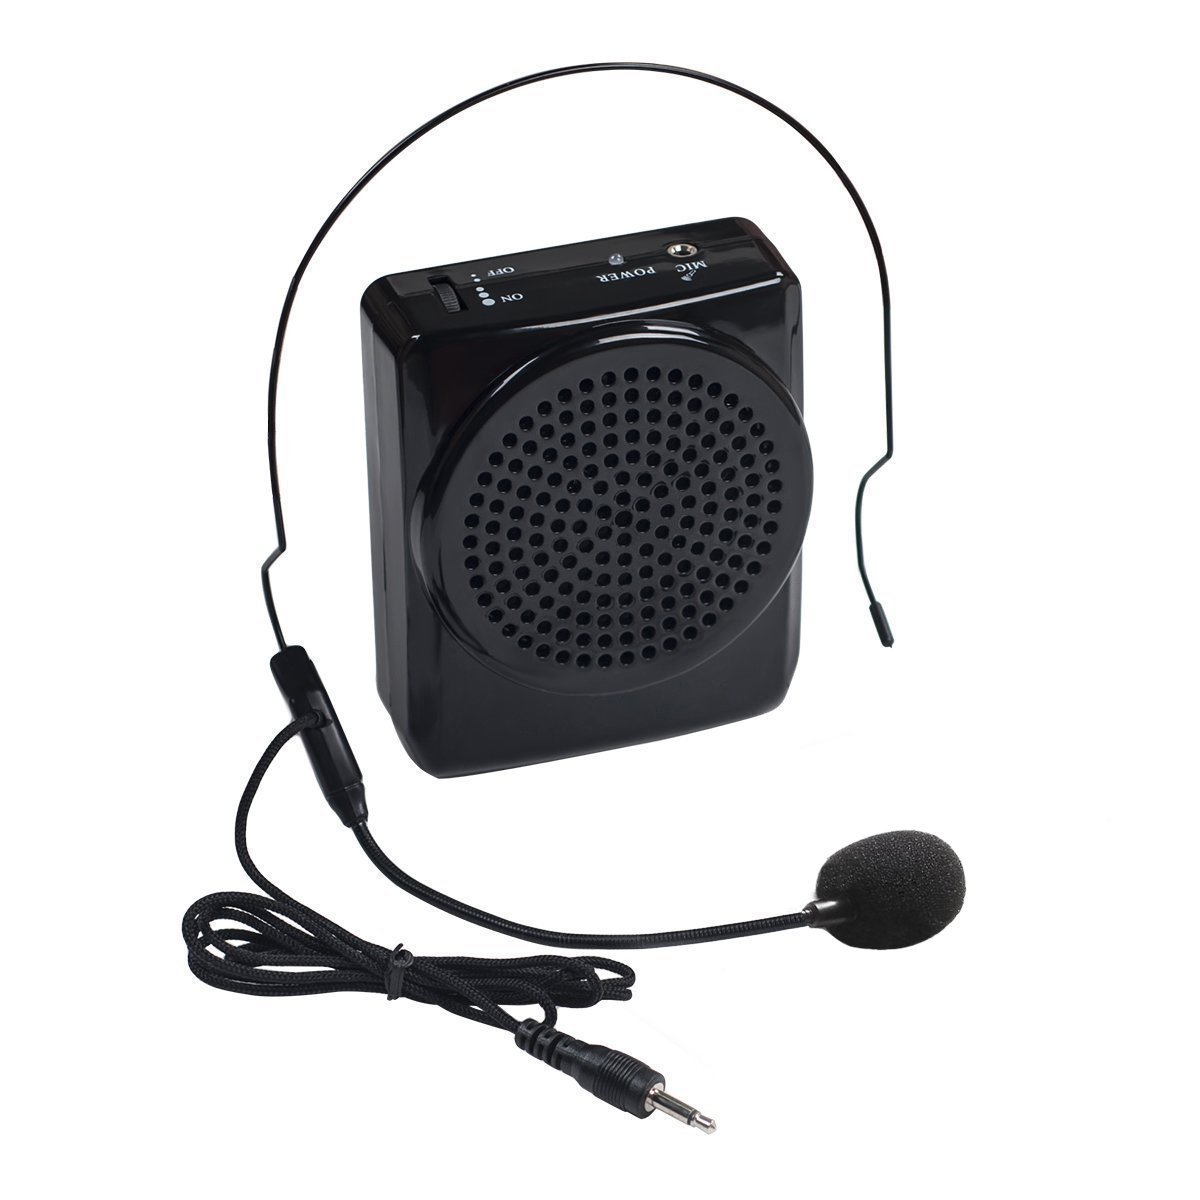 duafire voice amplifier portable microphone with waistband also good for teacher ebay. Black Bedroom Furniture Sets. Home Design Ideas